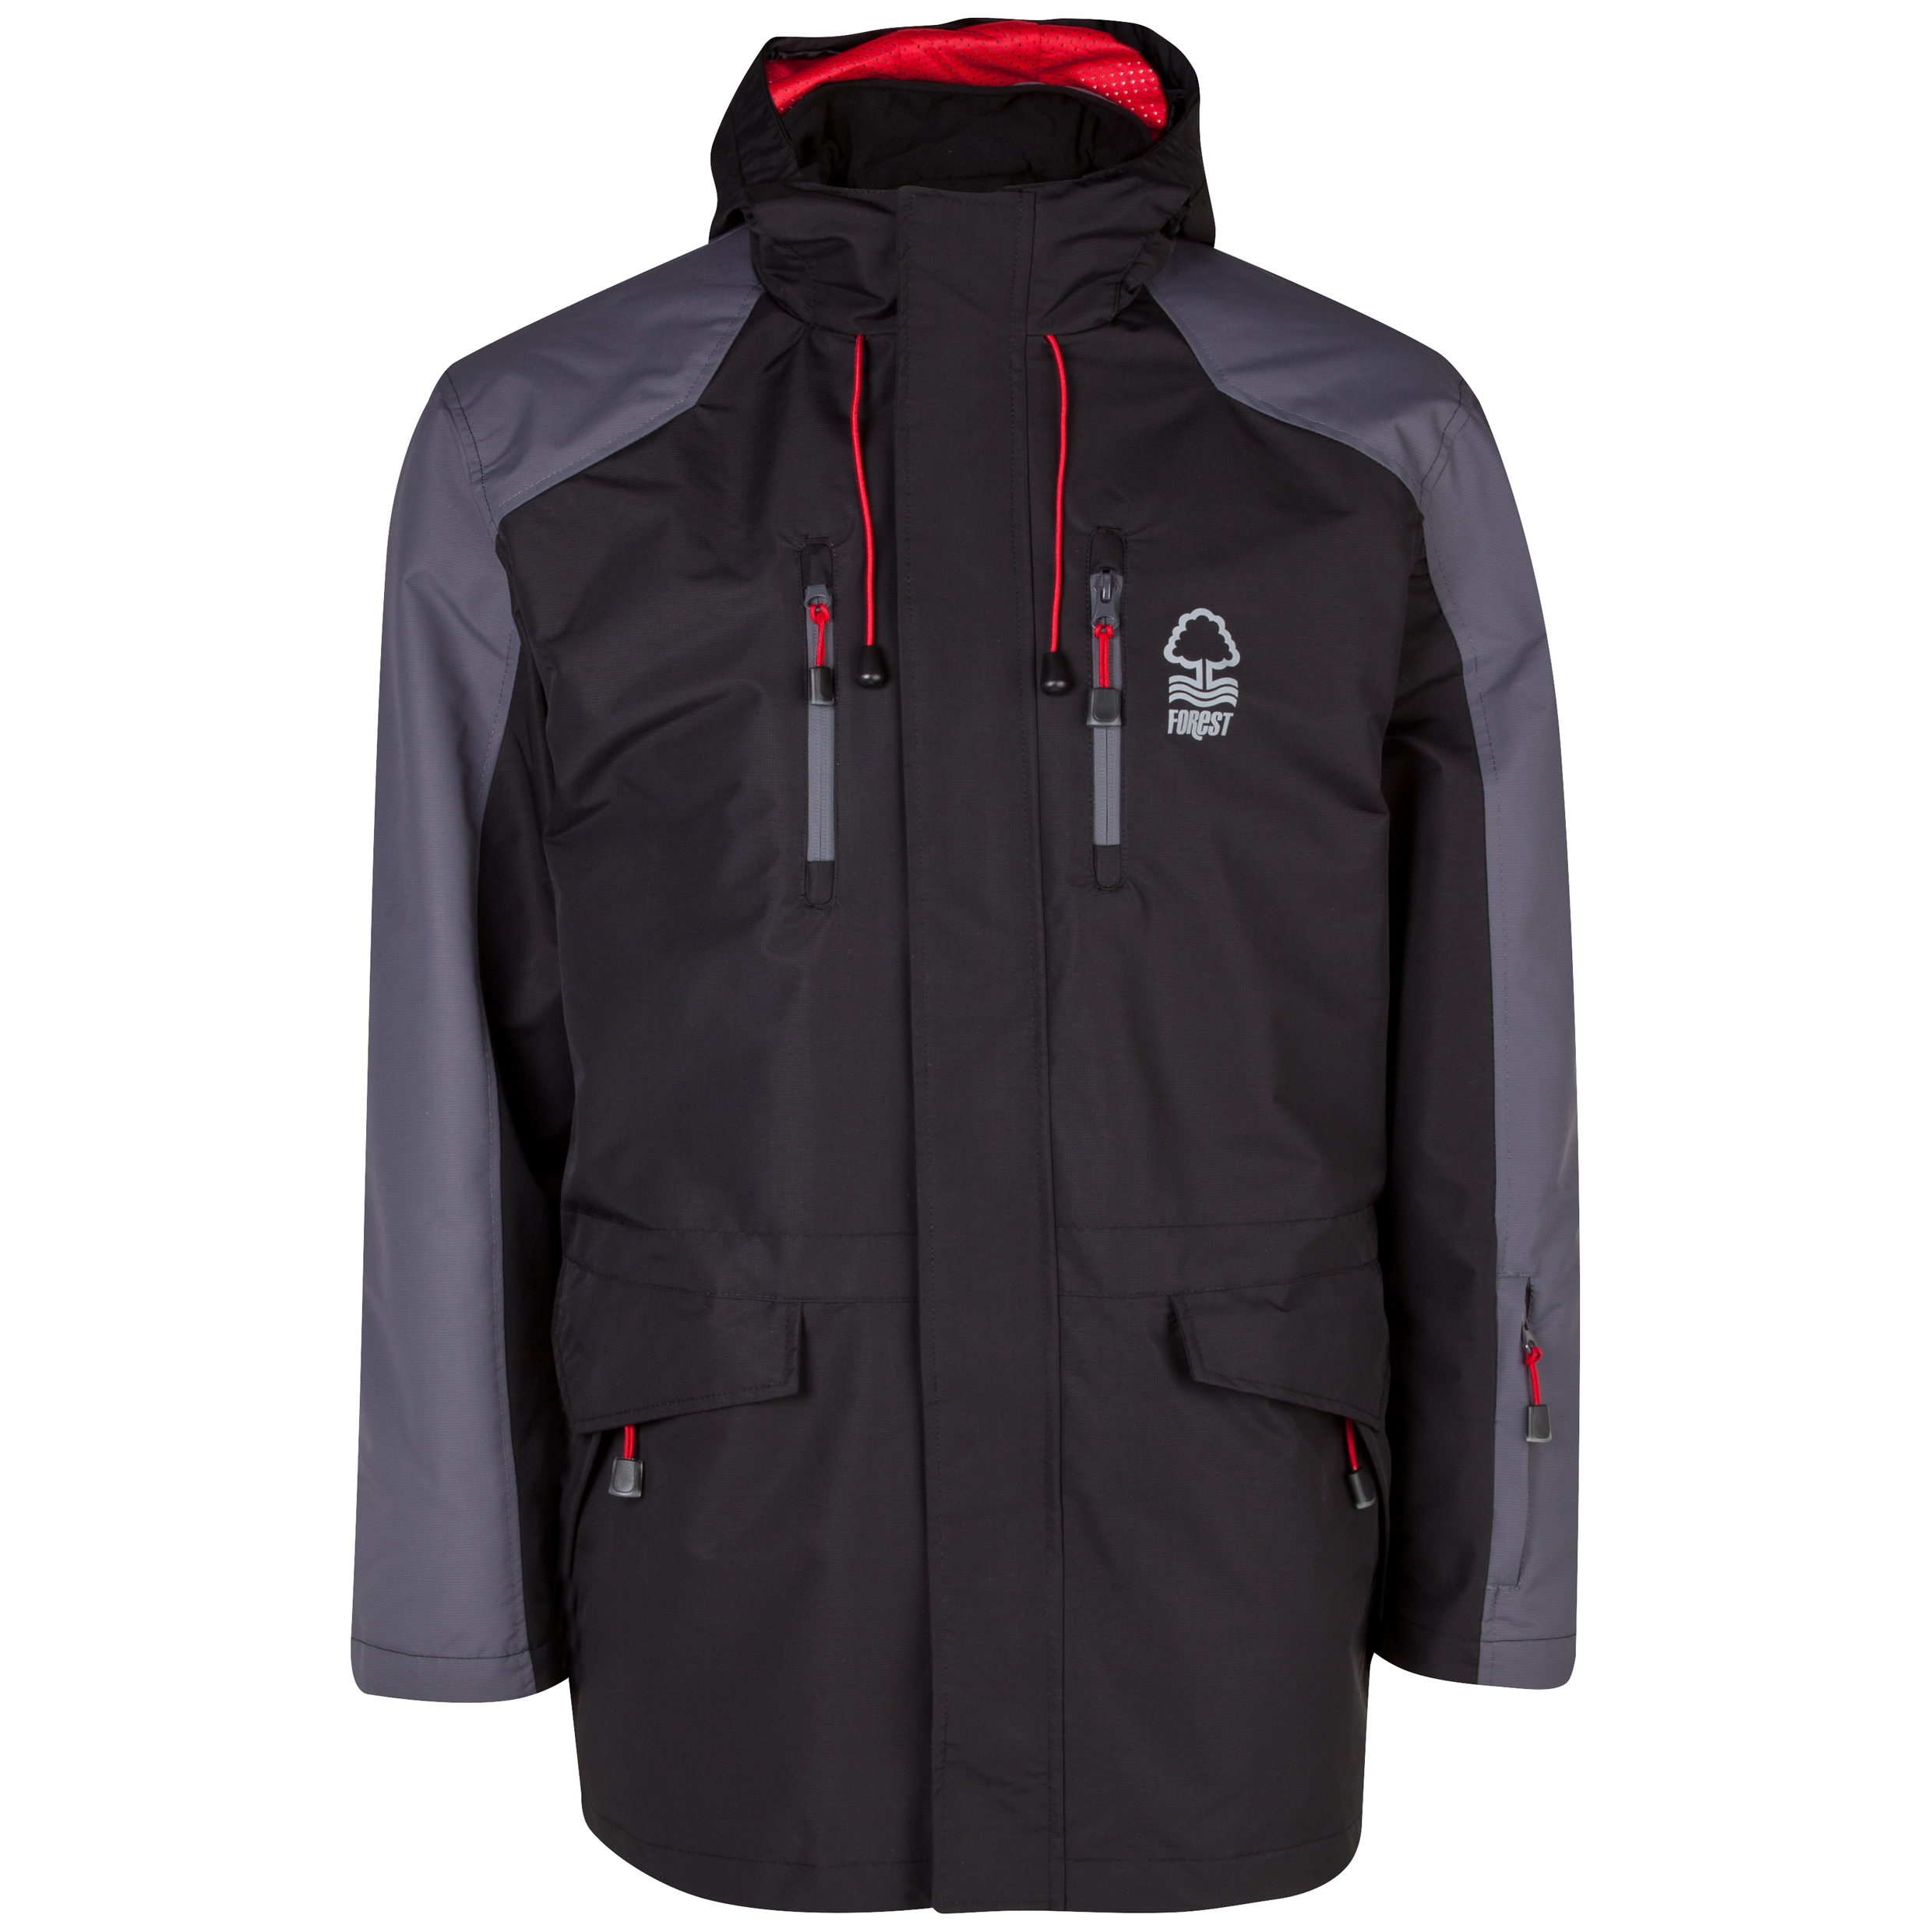 Nottingham Forest Performance Welbeck Coat - Mens Black